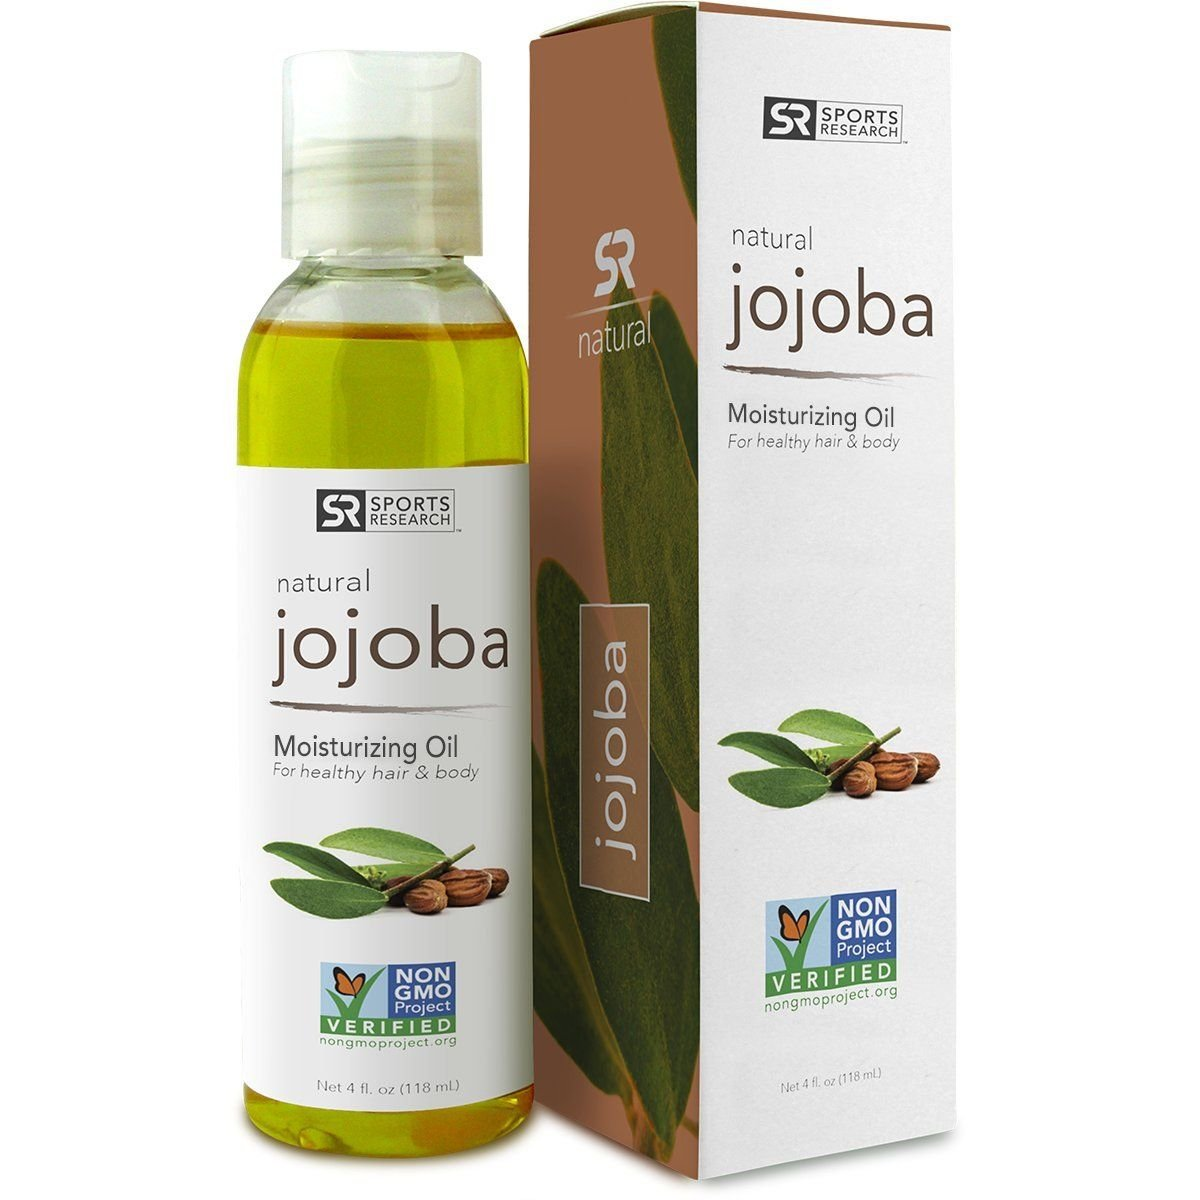 Jojoba Oil 4oz. Non-GMO 100% Organic Oil for Hair, Skin, Scalp and Massage Carrier Oils - UV Resistant BPA Free Bottle by Sports Research B00Y1HNYW4